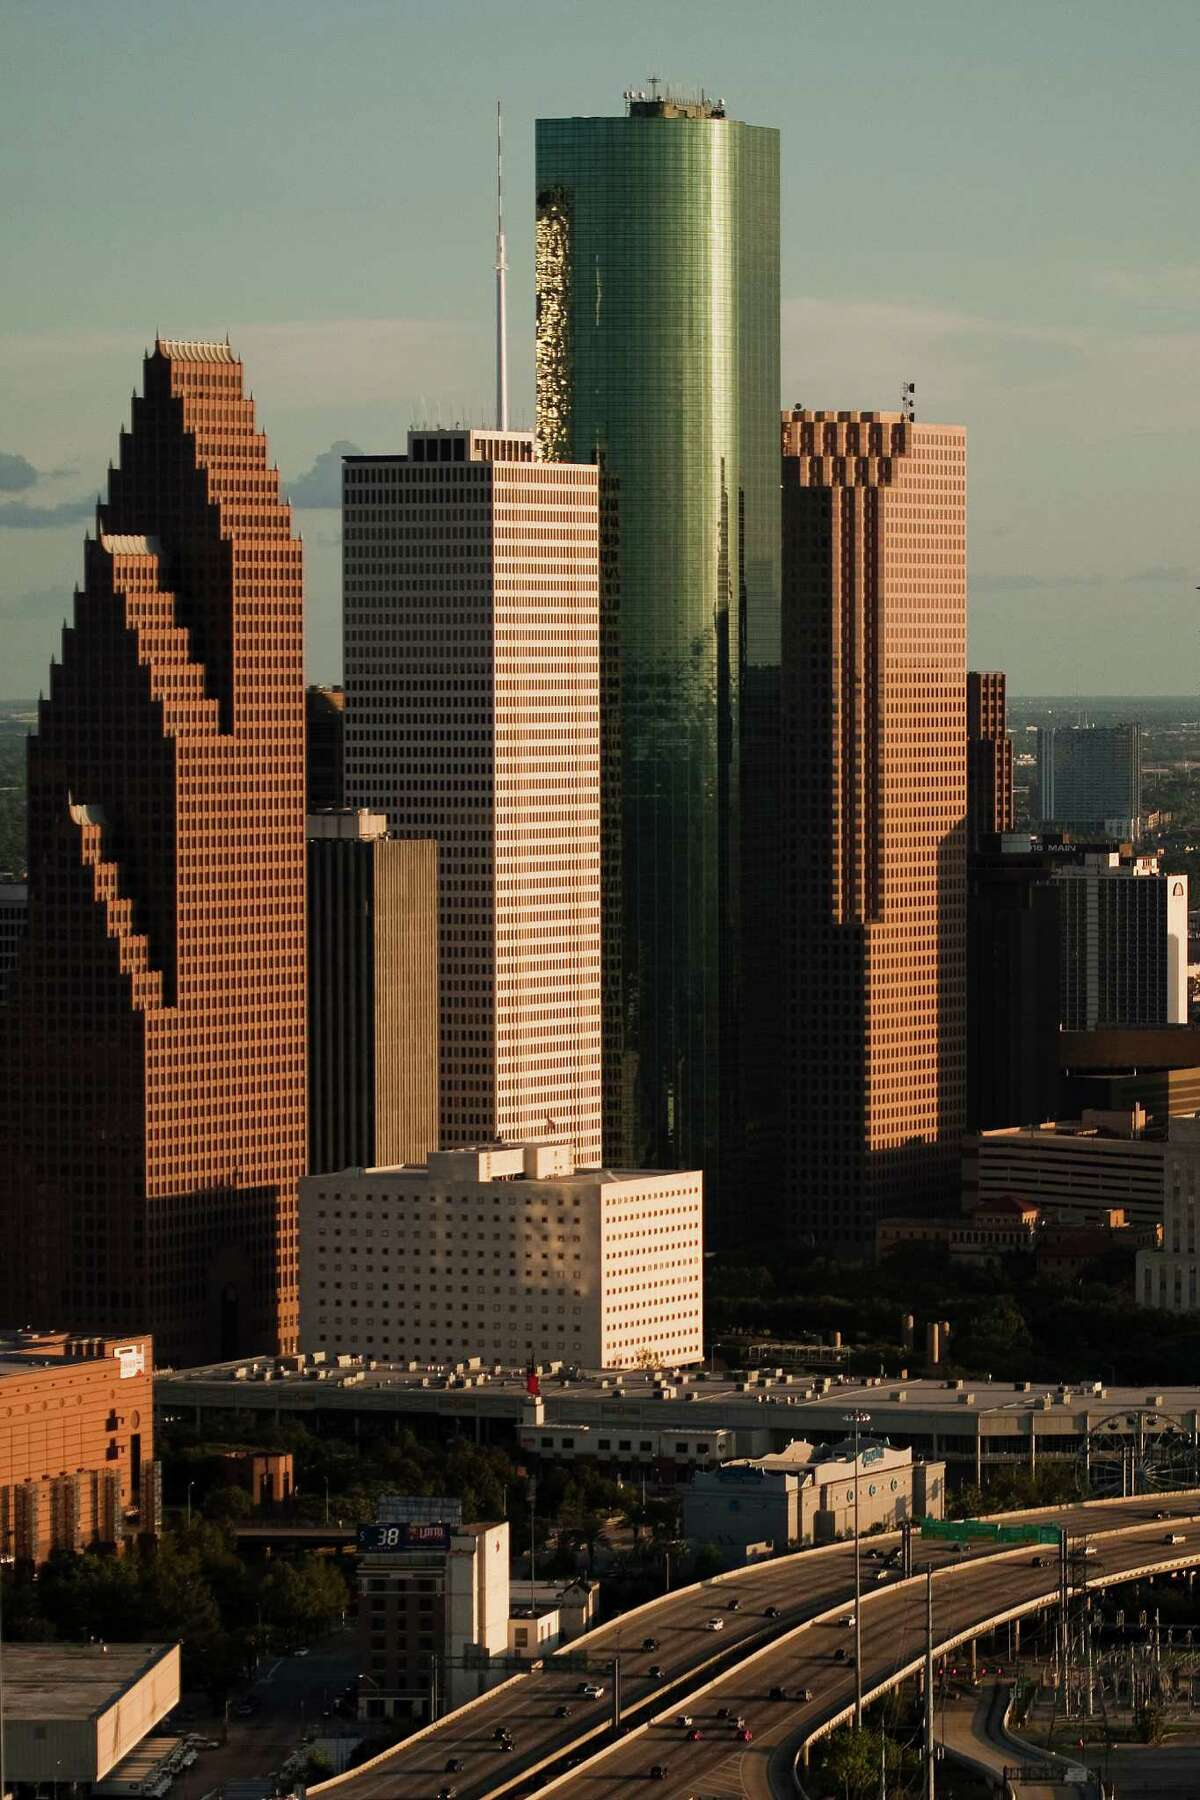 Houston's skyline will be a bit more cluttered in a few years with more than a dozen high-rise building under construction, both commercial and residential. There's so much construction that Emporis ranked the city seventh among North American Cities with Most Number of Highrise Developments last year. See which developments are happening right now in our gallery.(h/t SkyscraperPage.com)